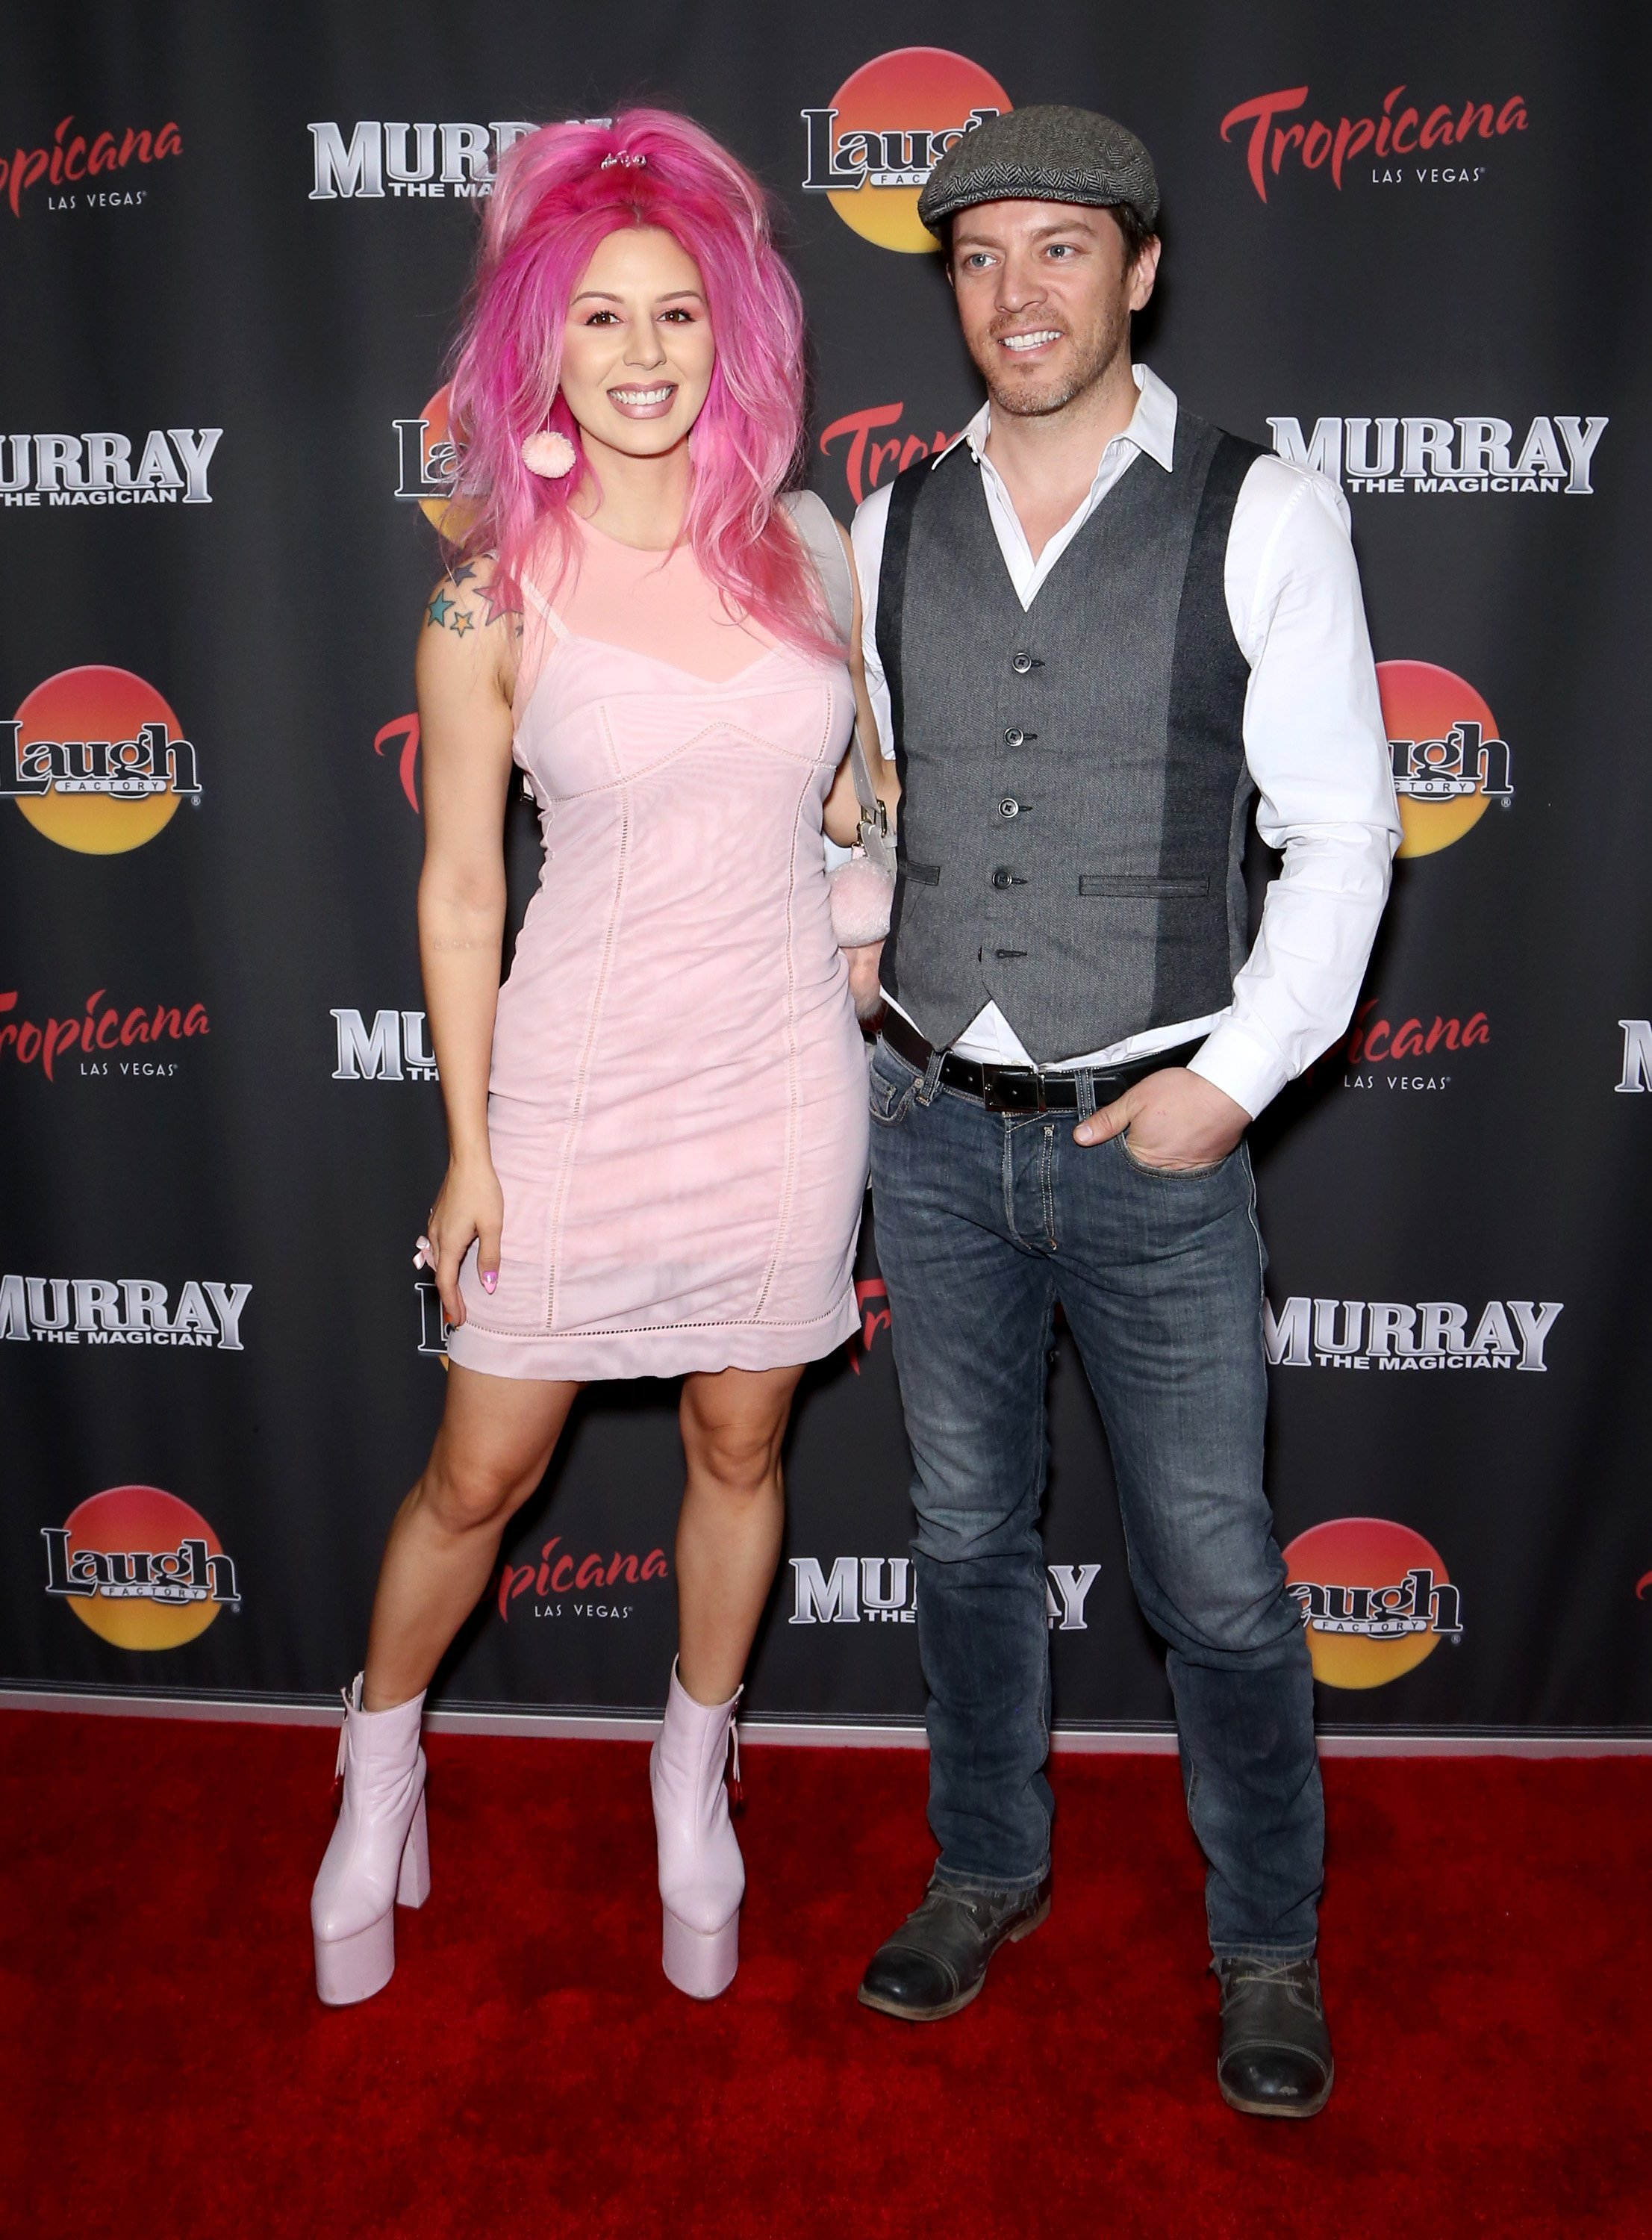 Annalee Belle and J.D. Scott on October 24, 2018 in Las Vegas, Nevada | Source: Getty Images